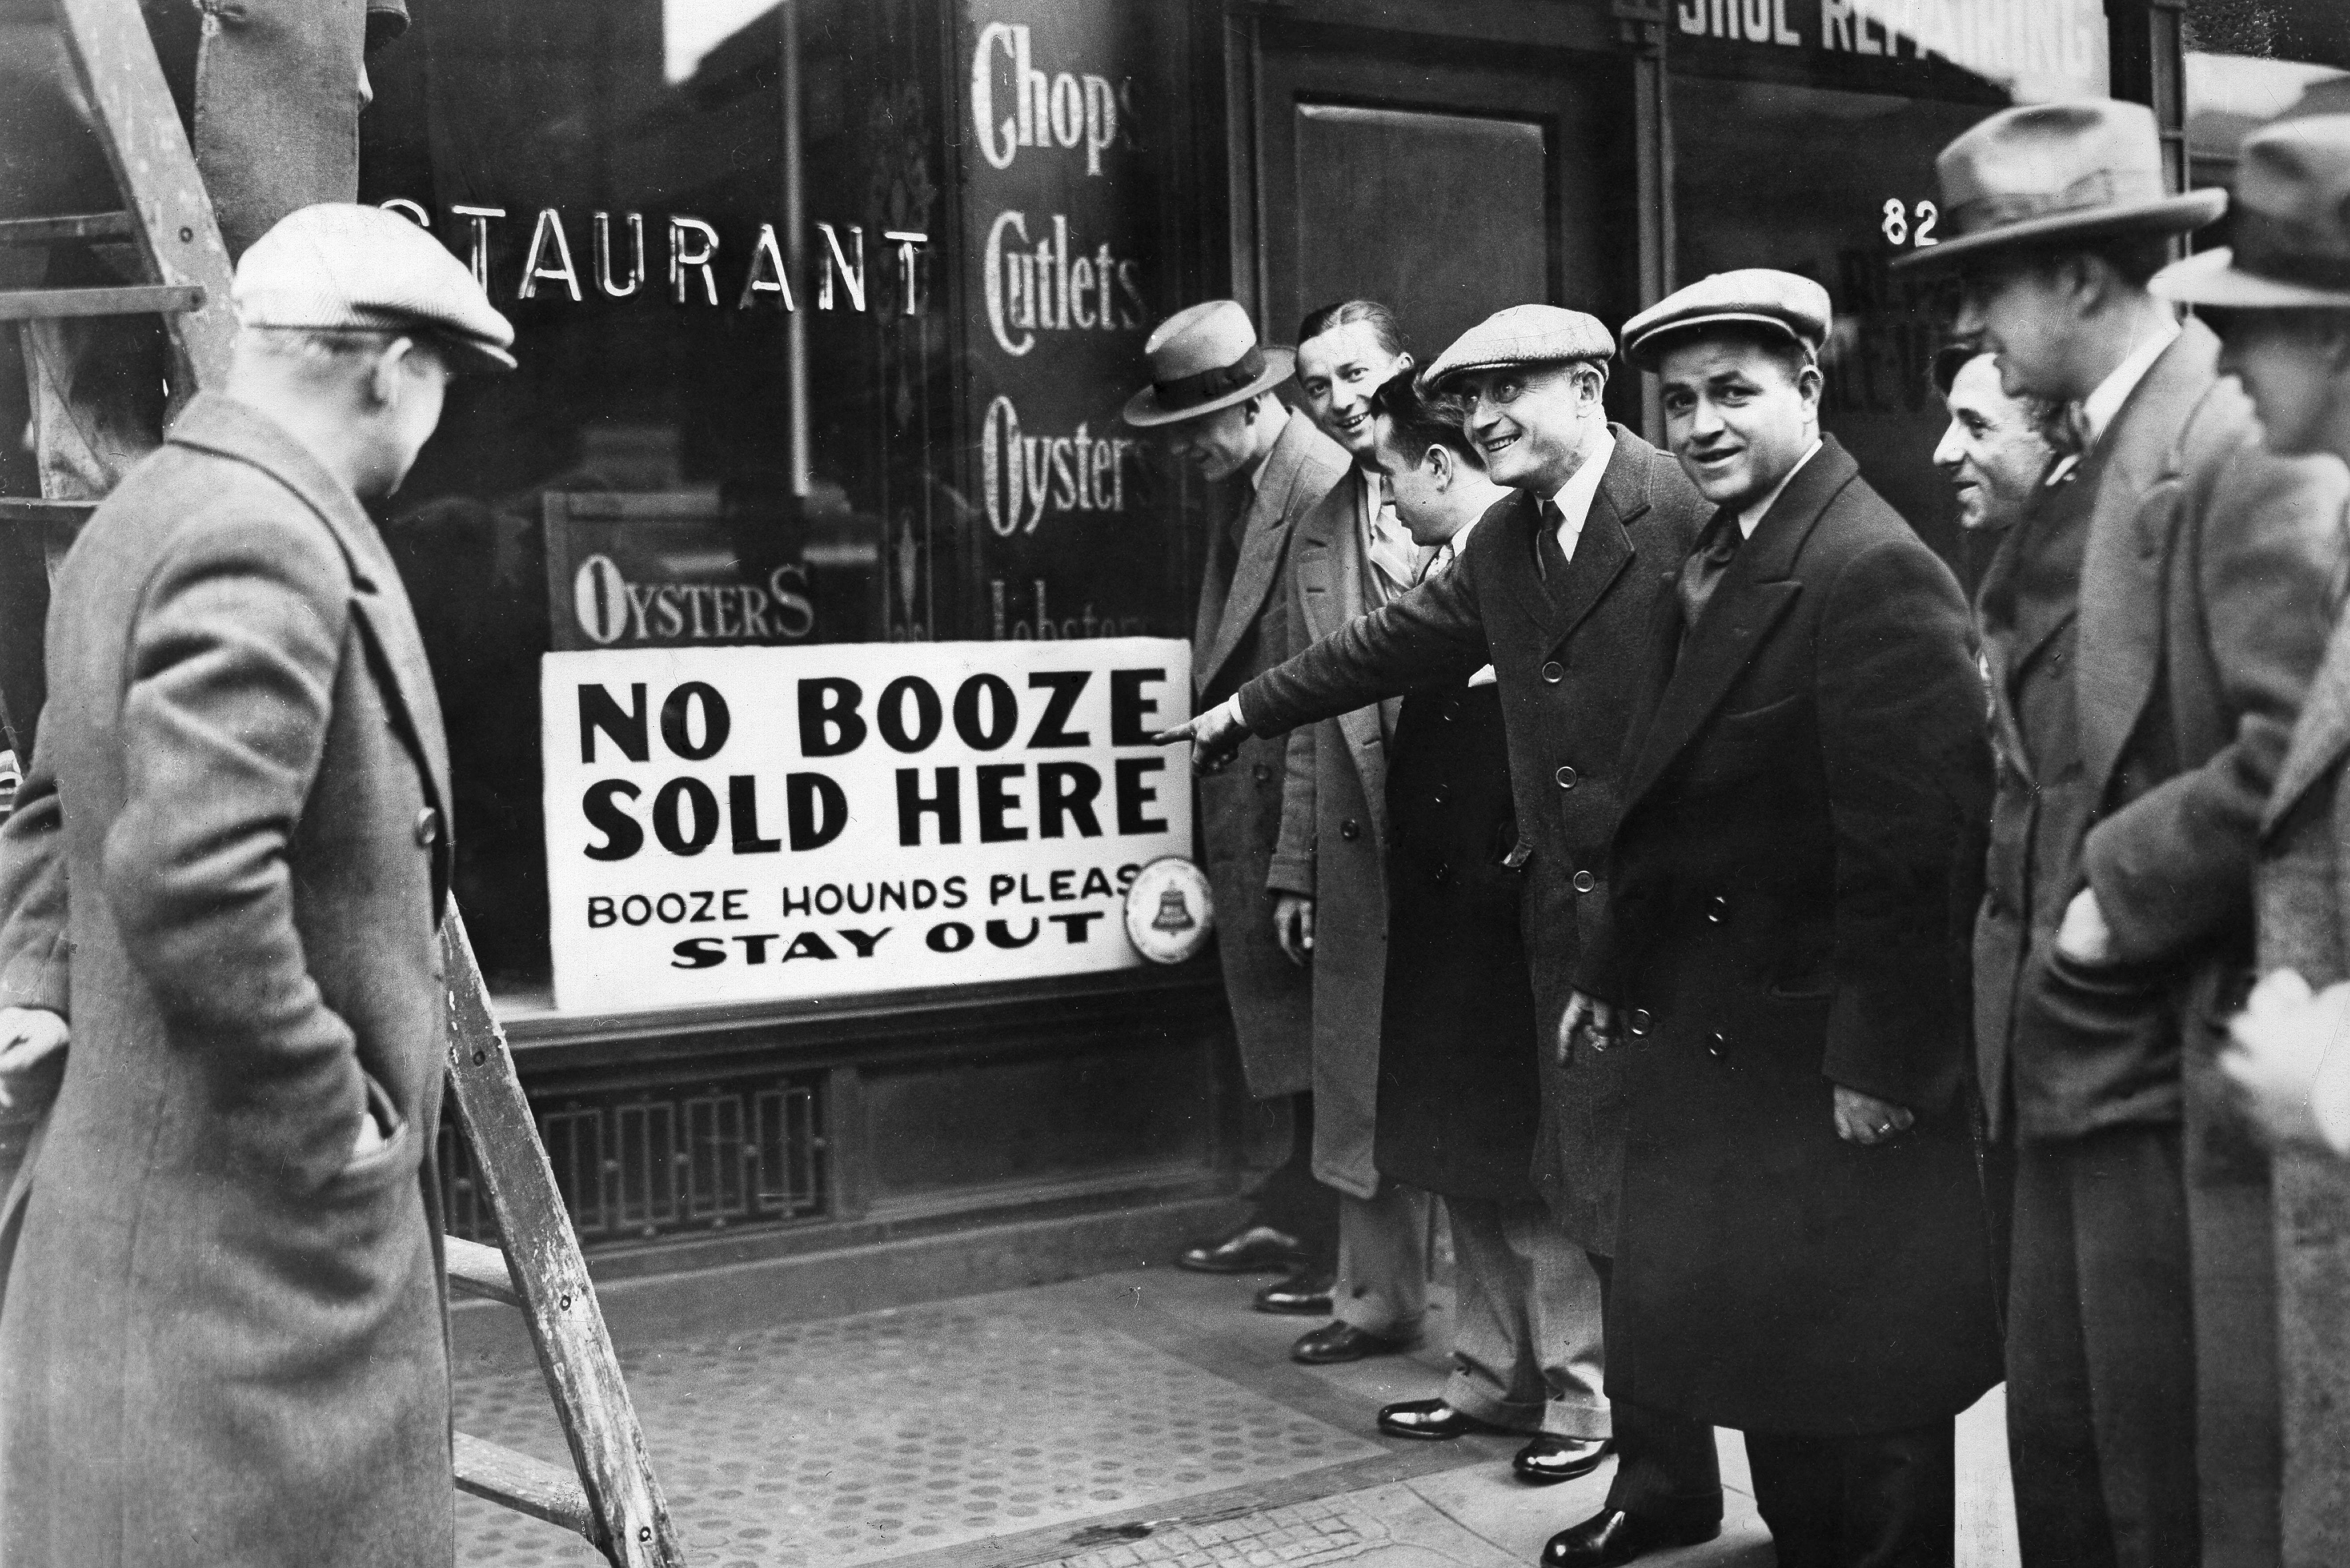 Prohibition began 100 years ago – here's a look at its economic impact